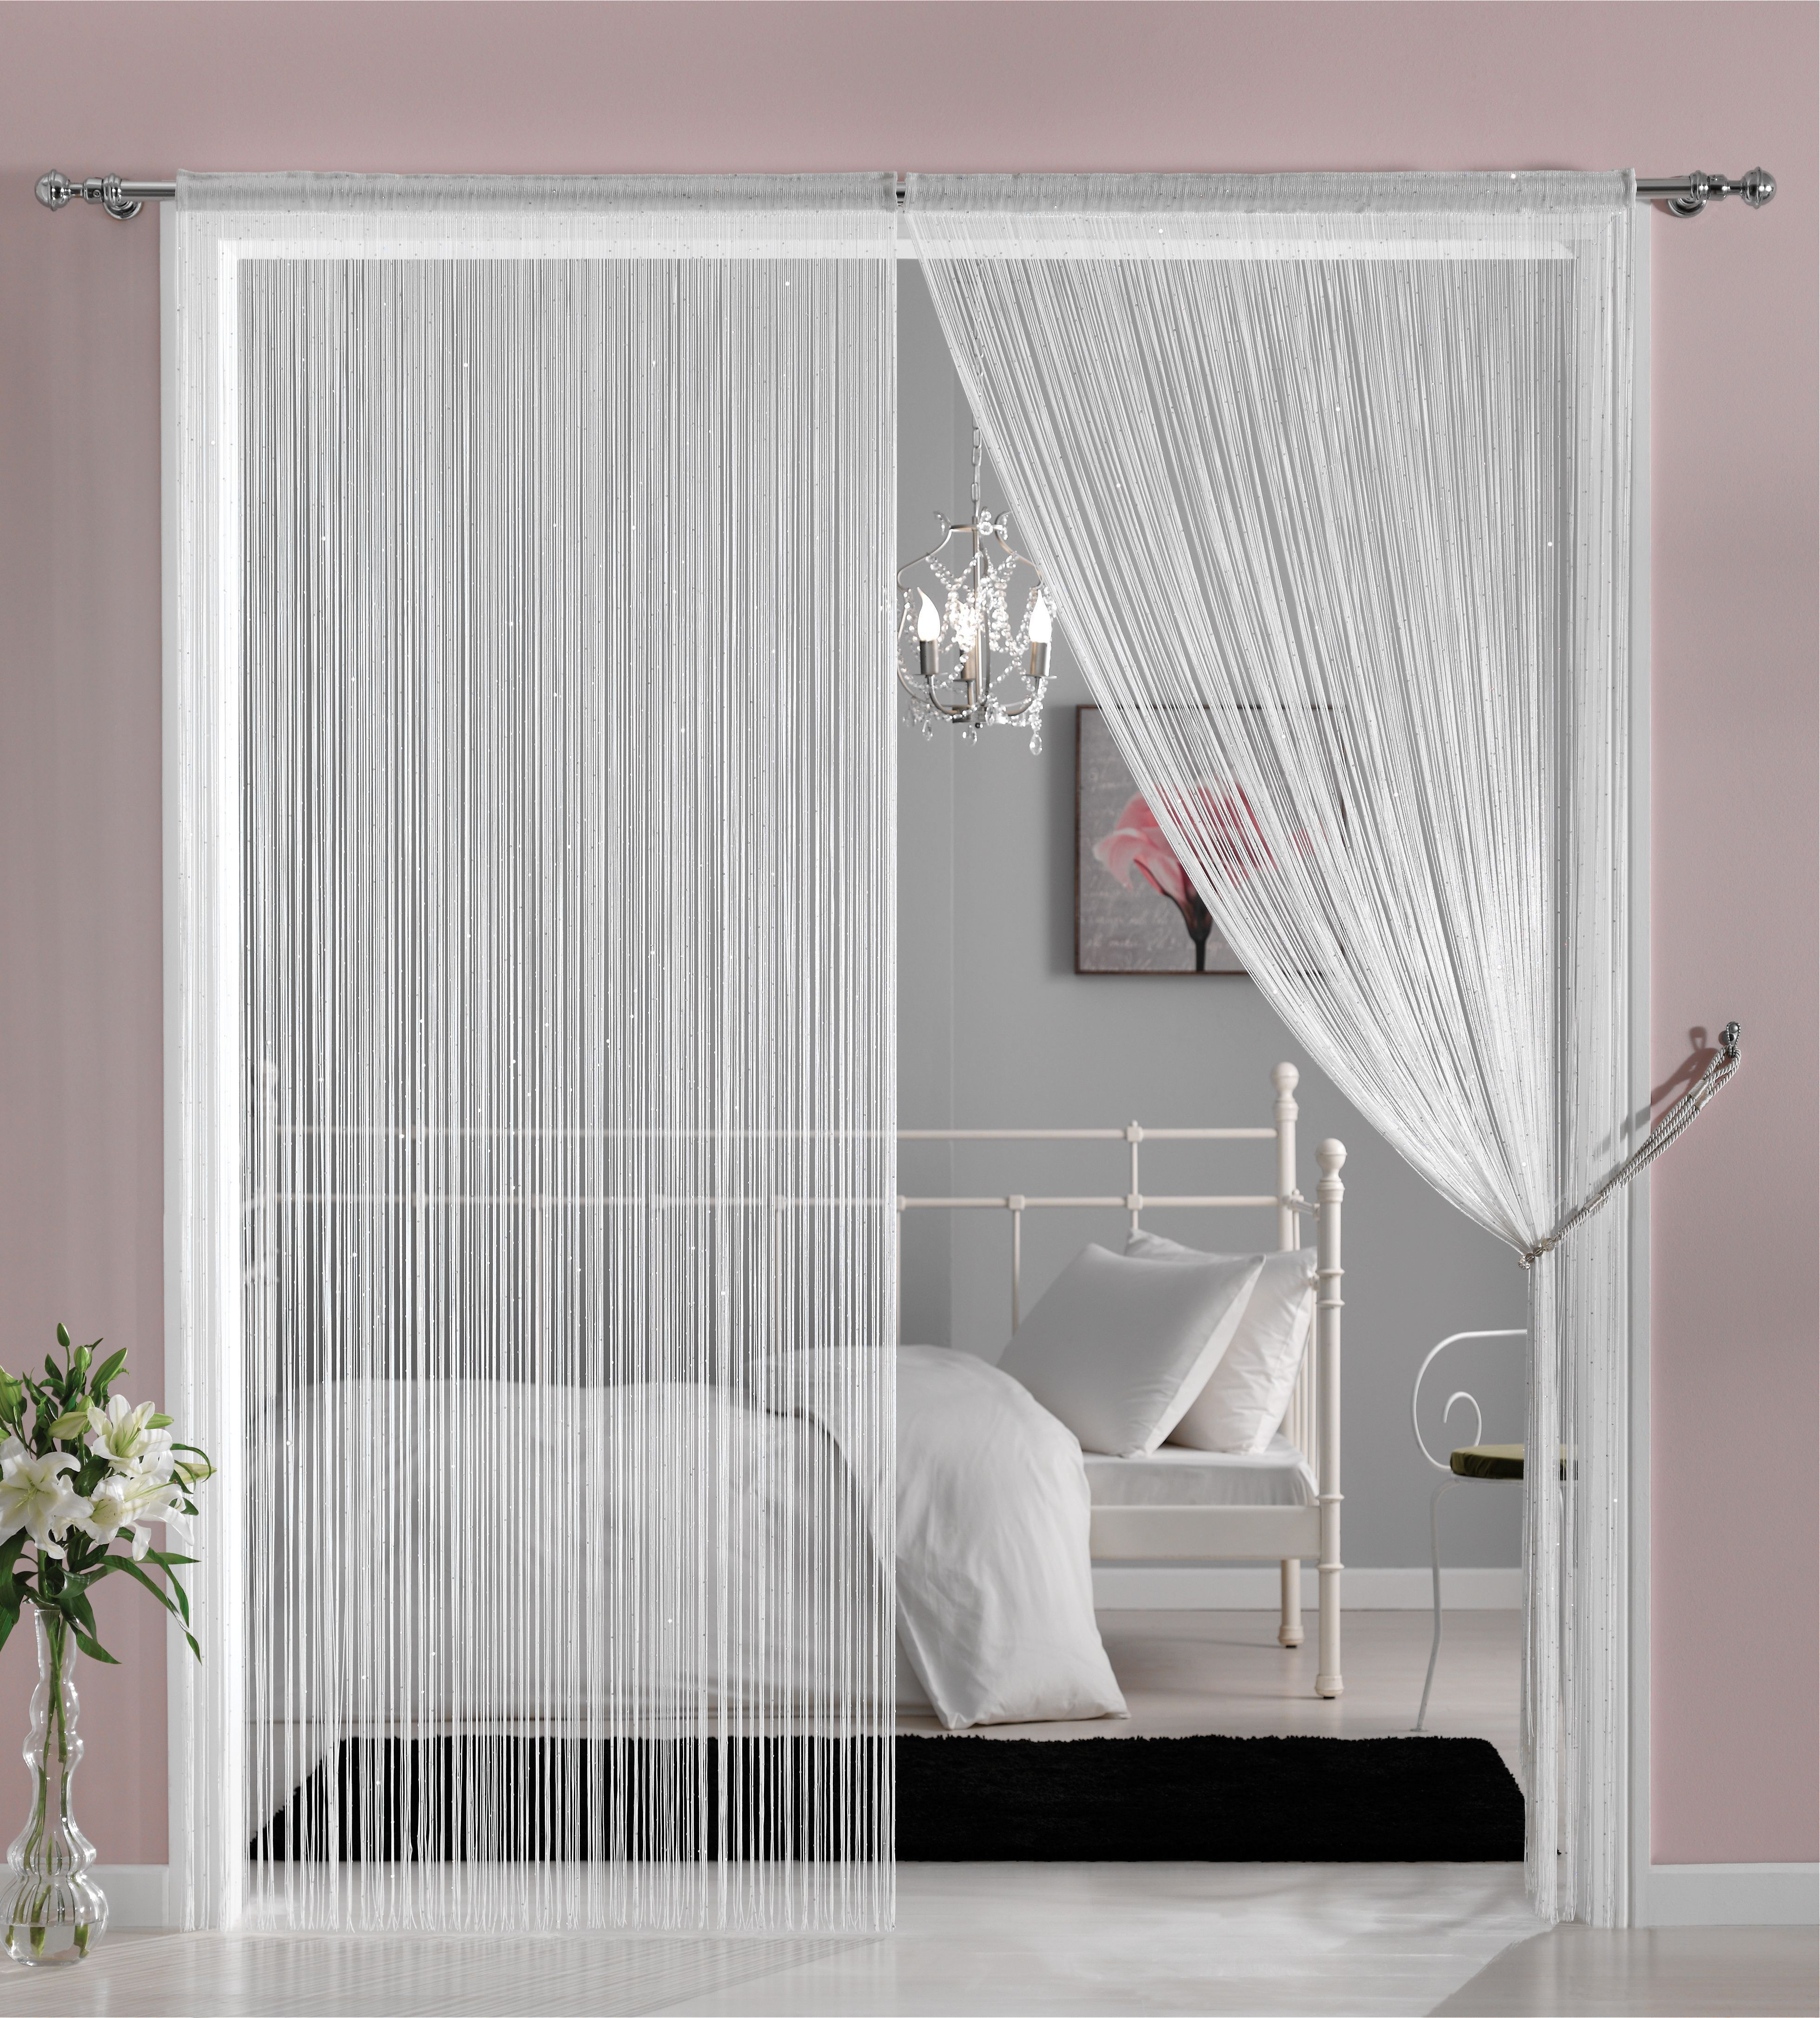 Rainfall String Curtains By Castle Trimmings Make The